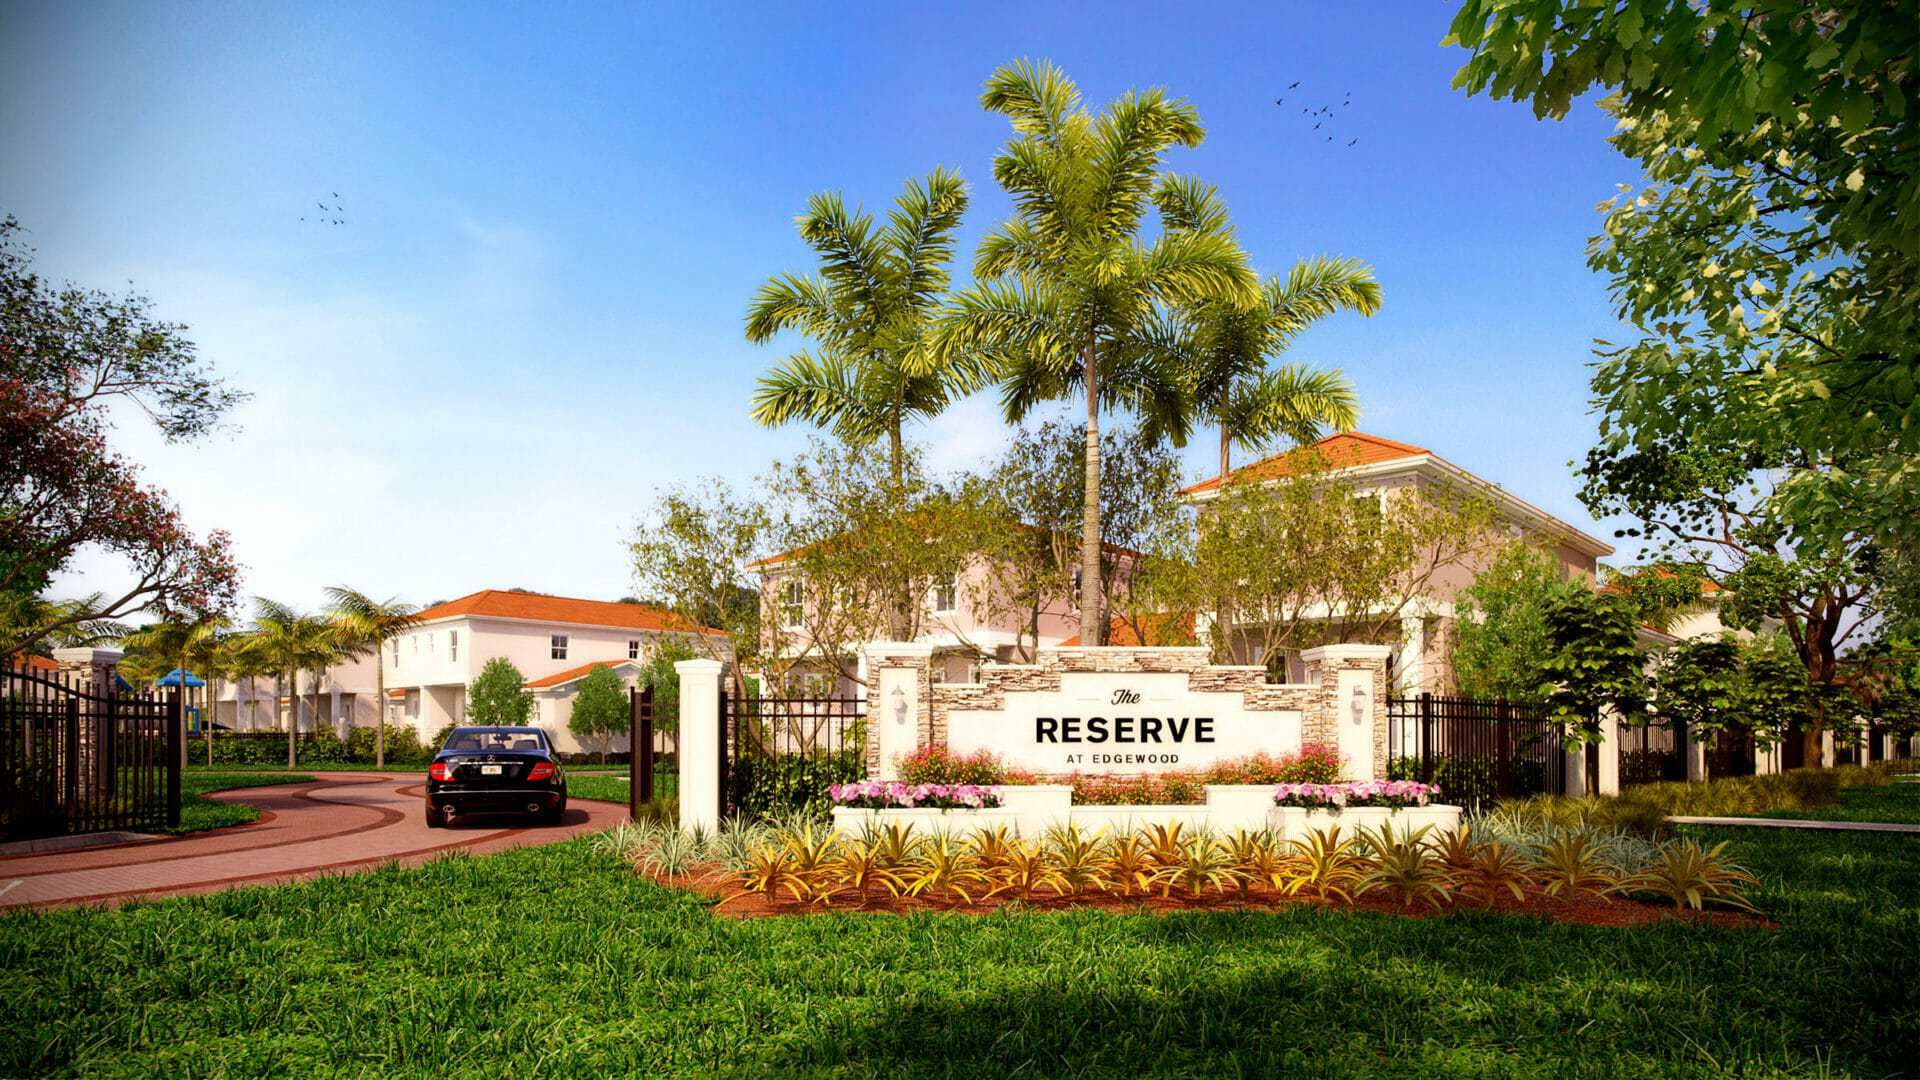 Former Mobili ~ Lennar buys townhome project in fort lauderdale site was a former